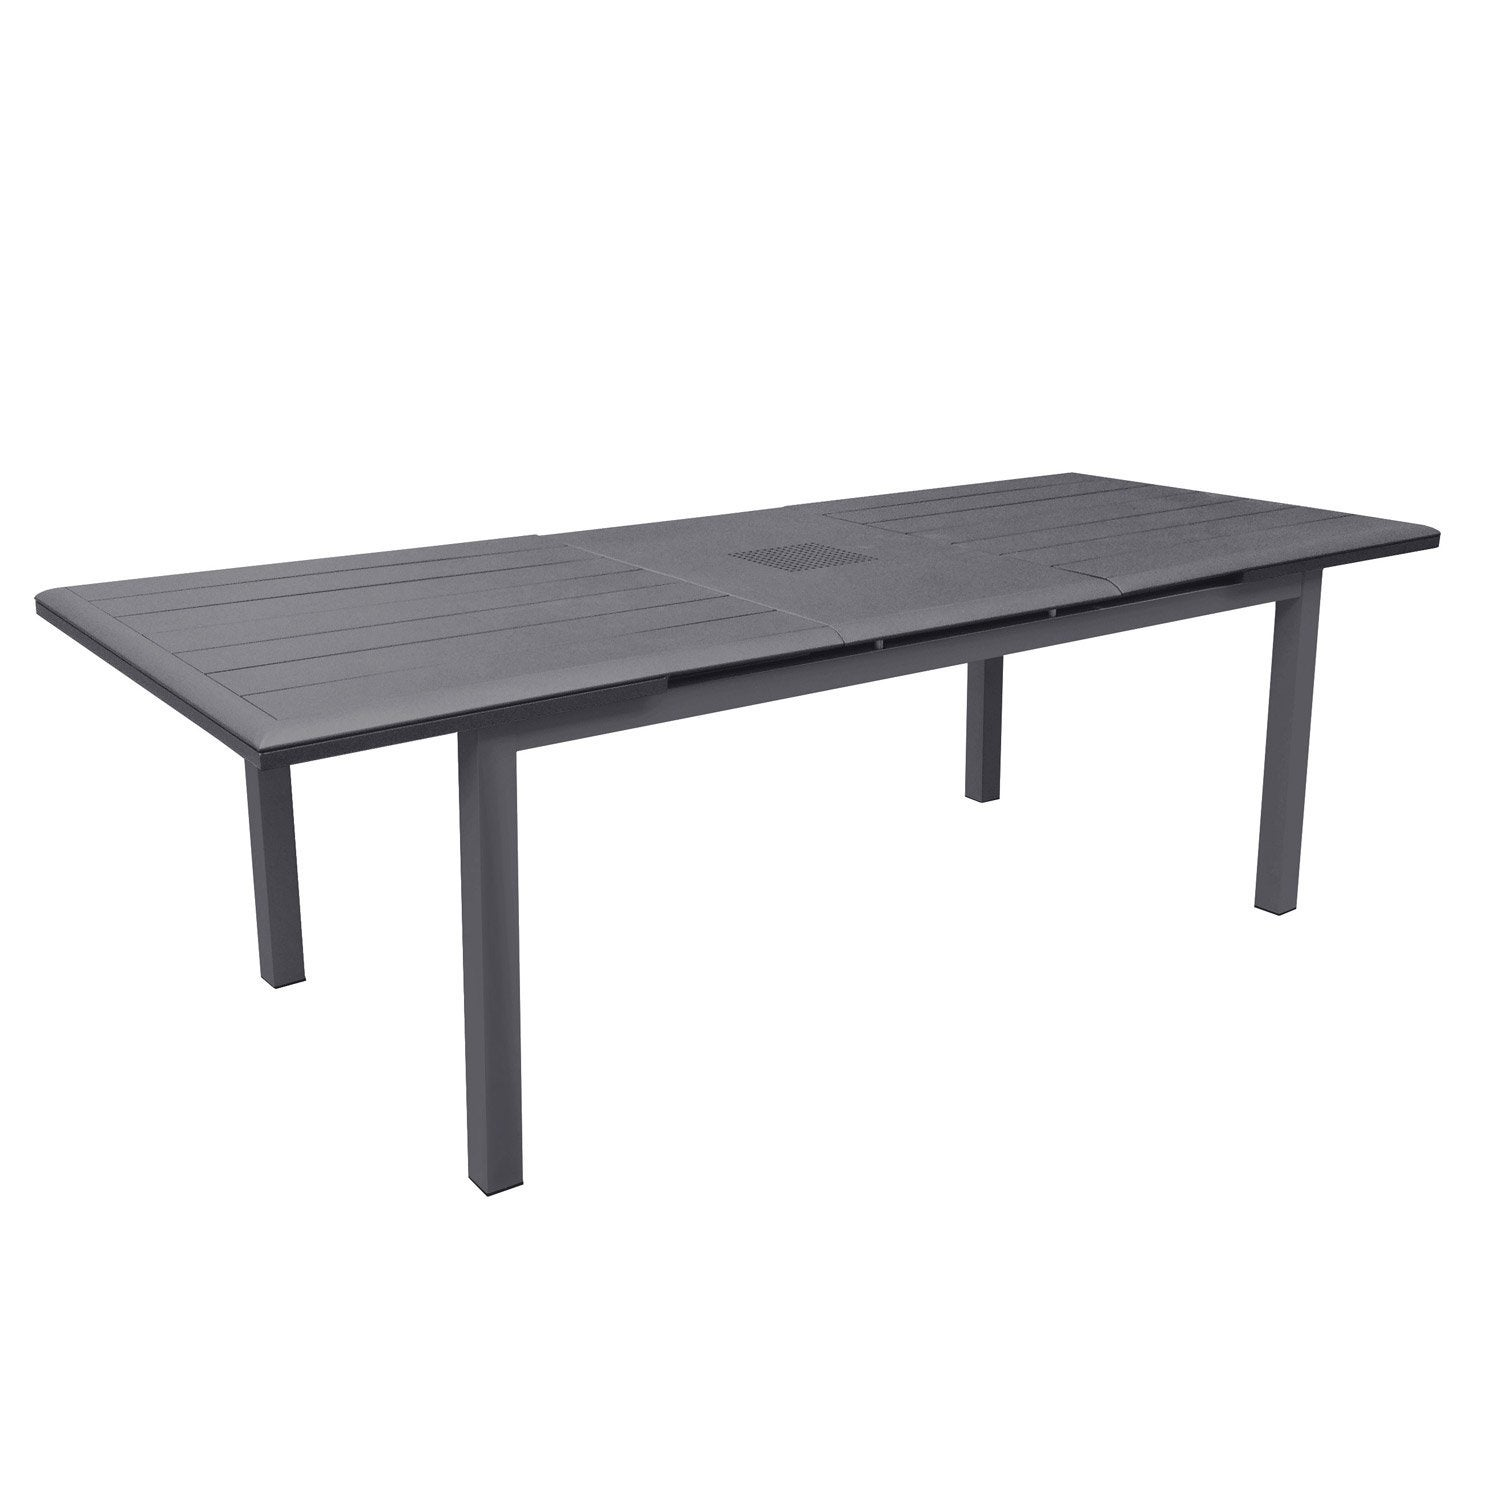 table de jardin louisiane rectangulaire gris 6 8 personnes leroy merlin. Black Bedroom Furniture Sets. Home Design Ideas